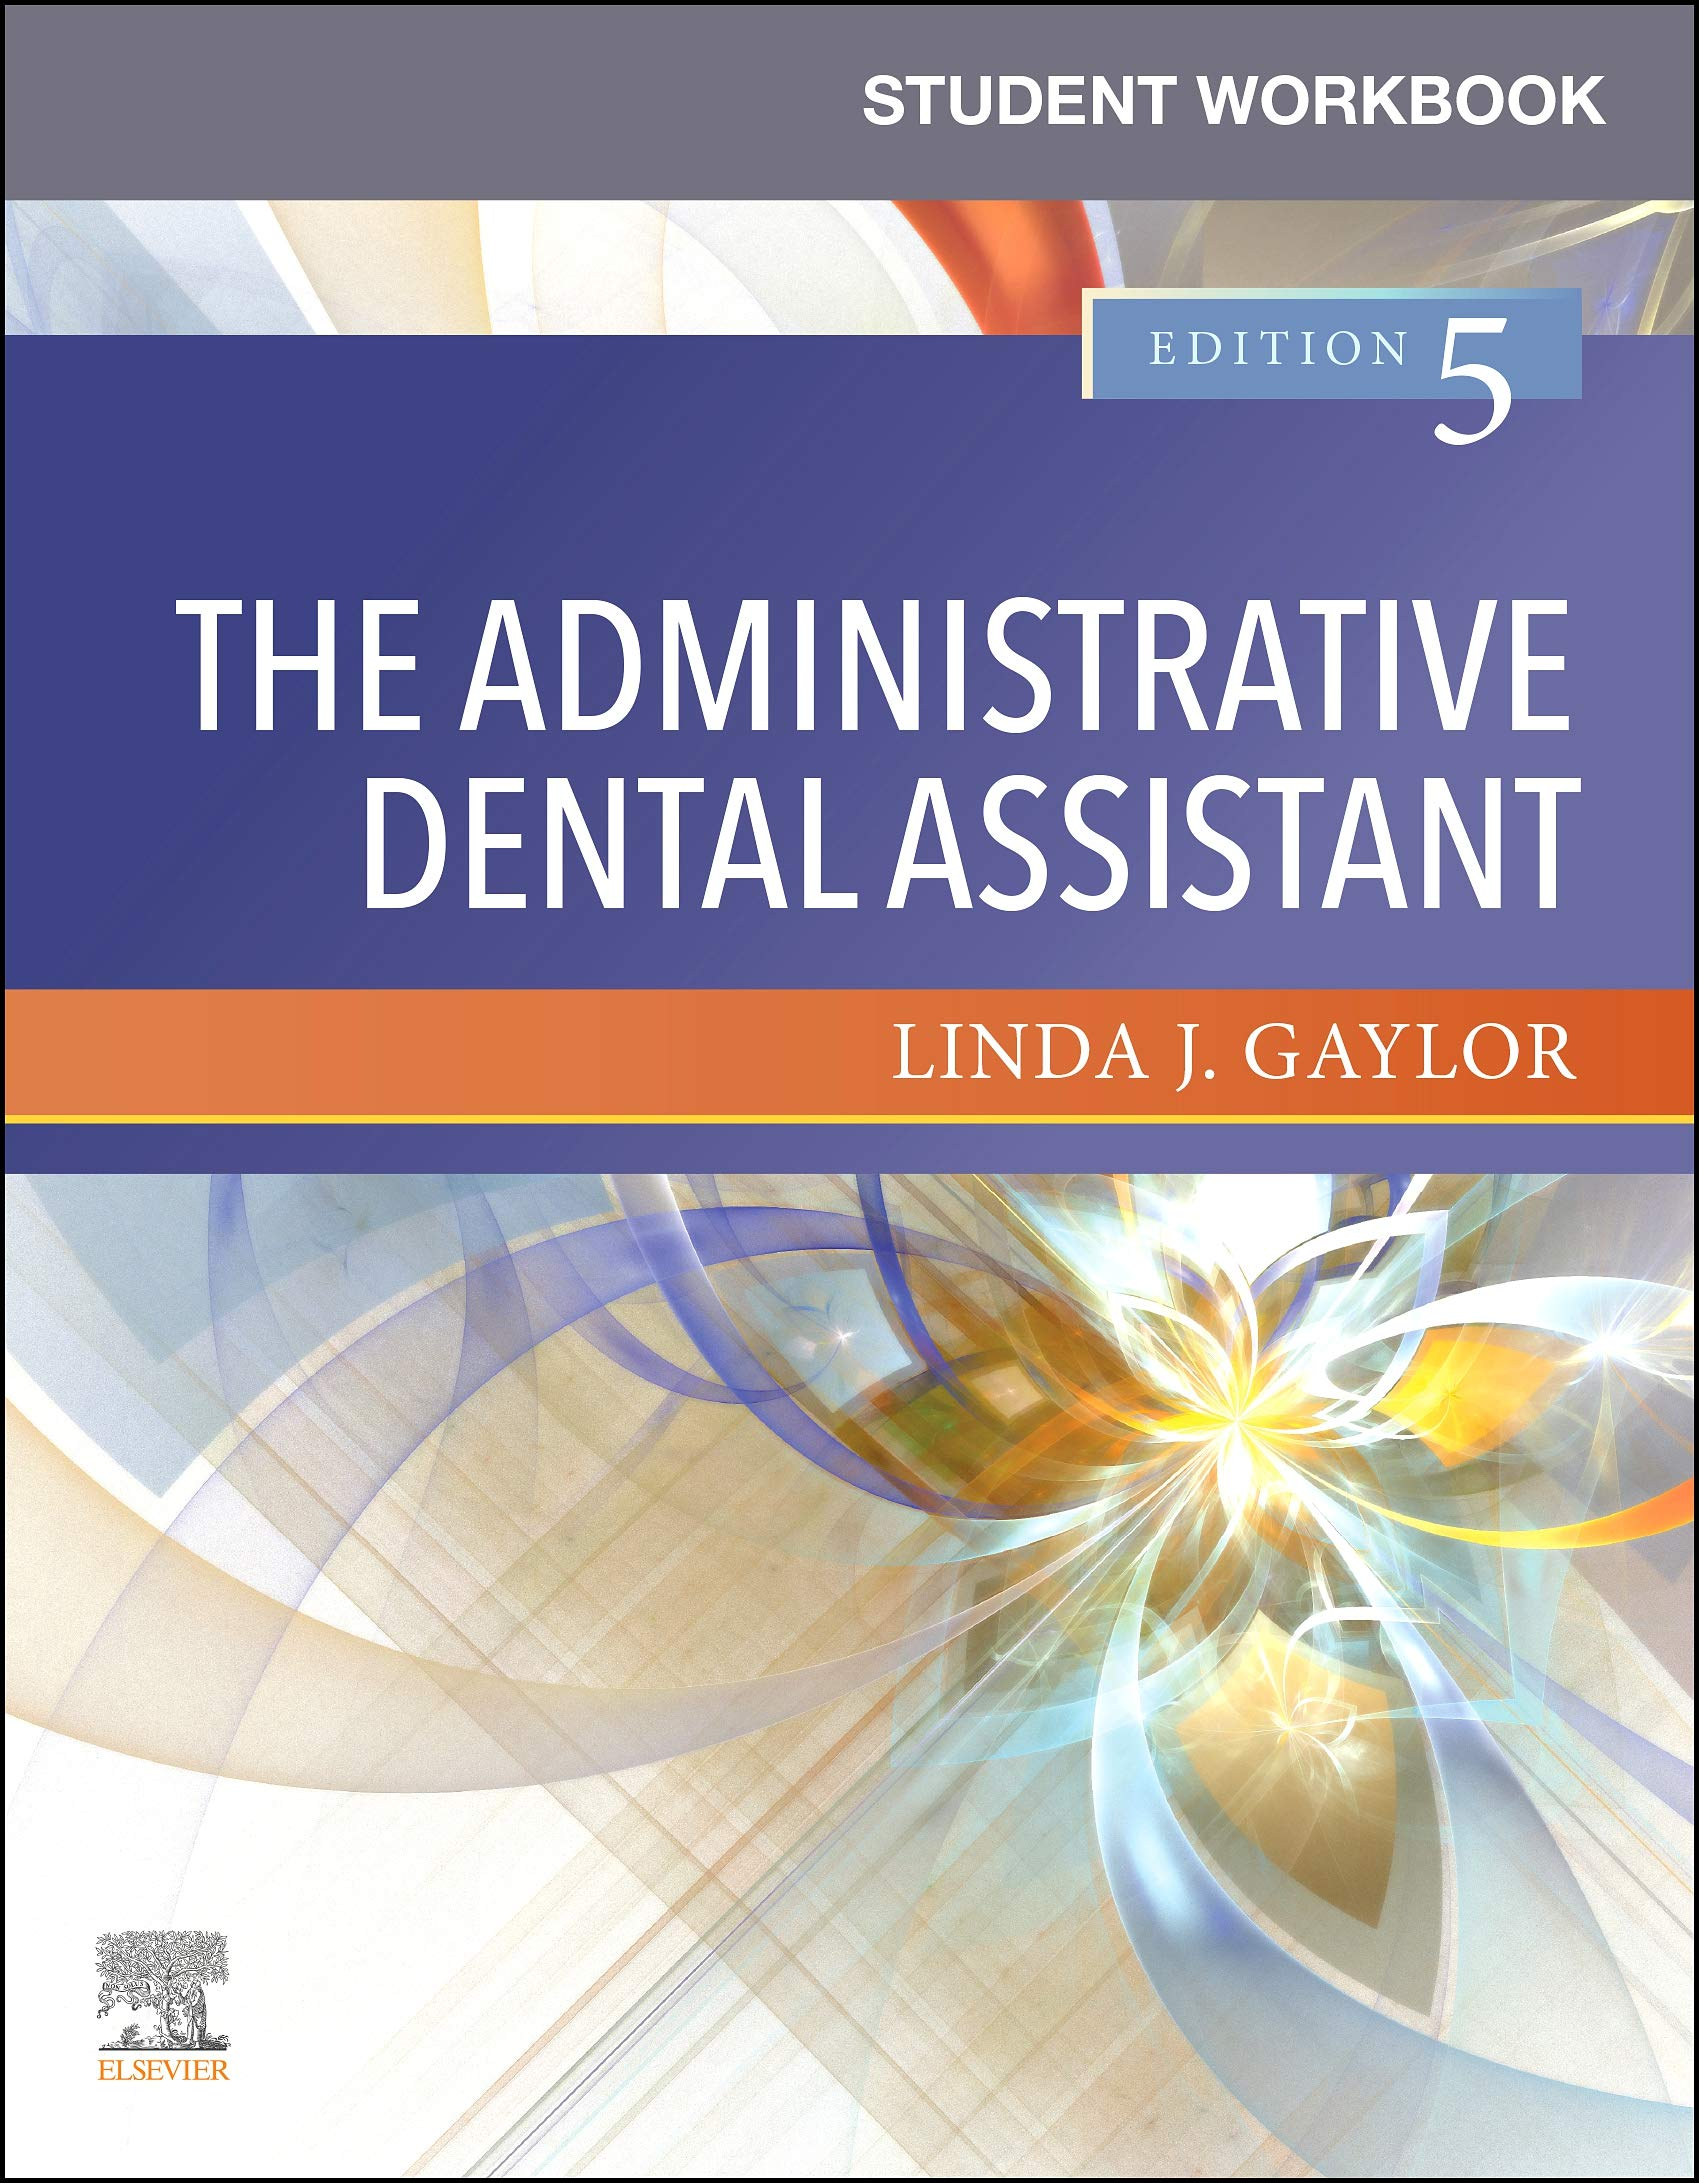 Student Workbook For The Administrative Dental Assistant E Book Kindle Edition By Gaylor Linda J Professional Technical Kindle Ebooks Amazon Com